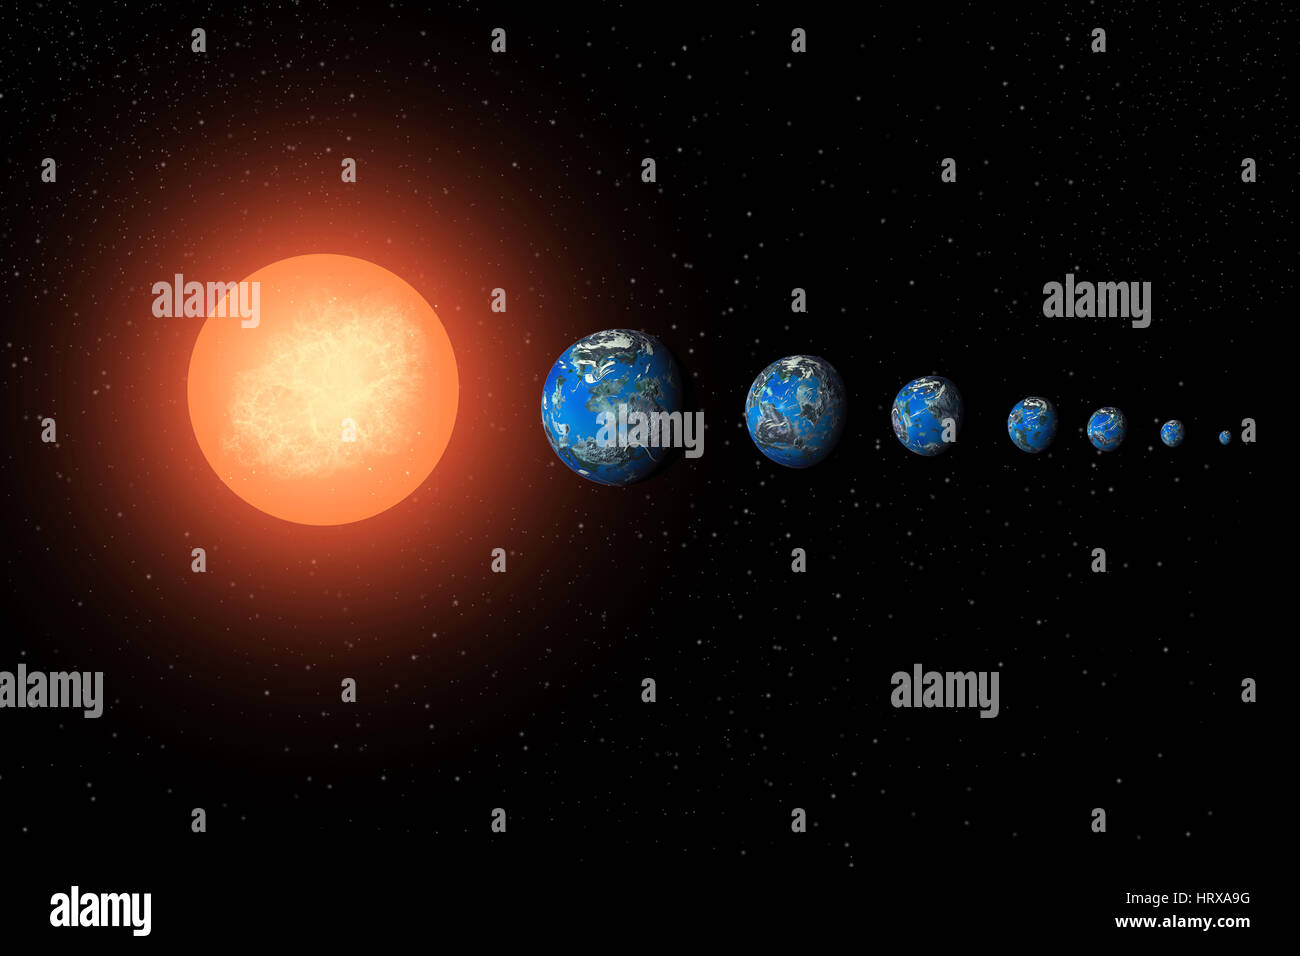 The Dwarf Star System Named 'Trappist' , As 7 Earth Like  Exoplanets In Orbit Around It. - Stock Image